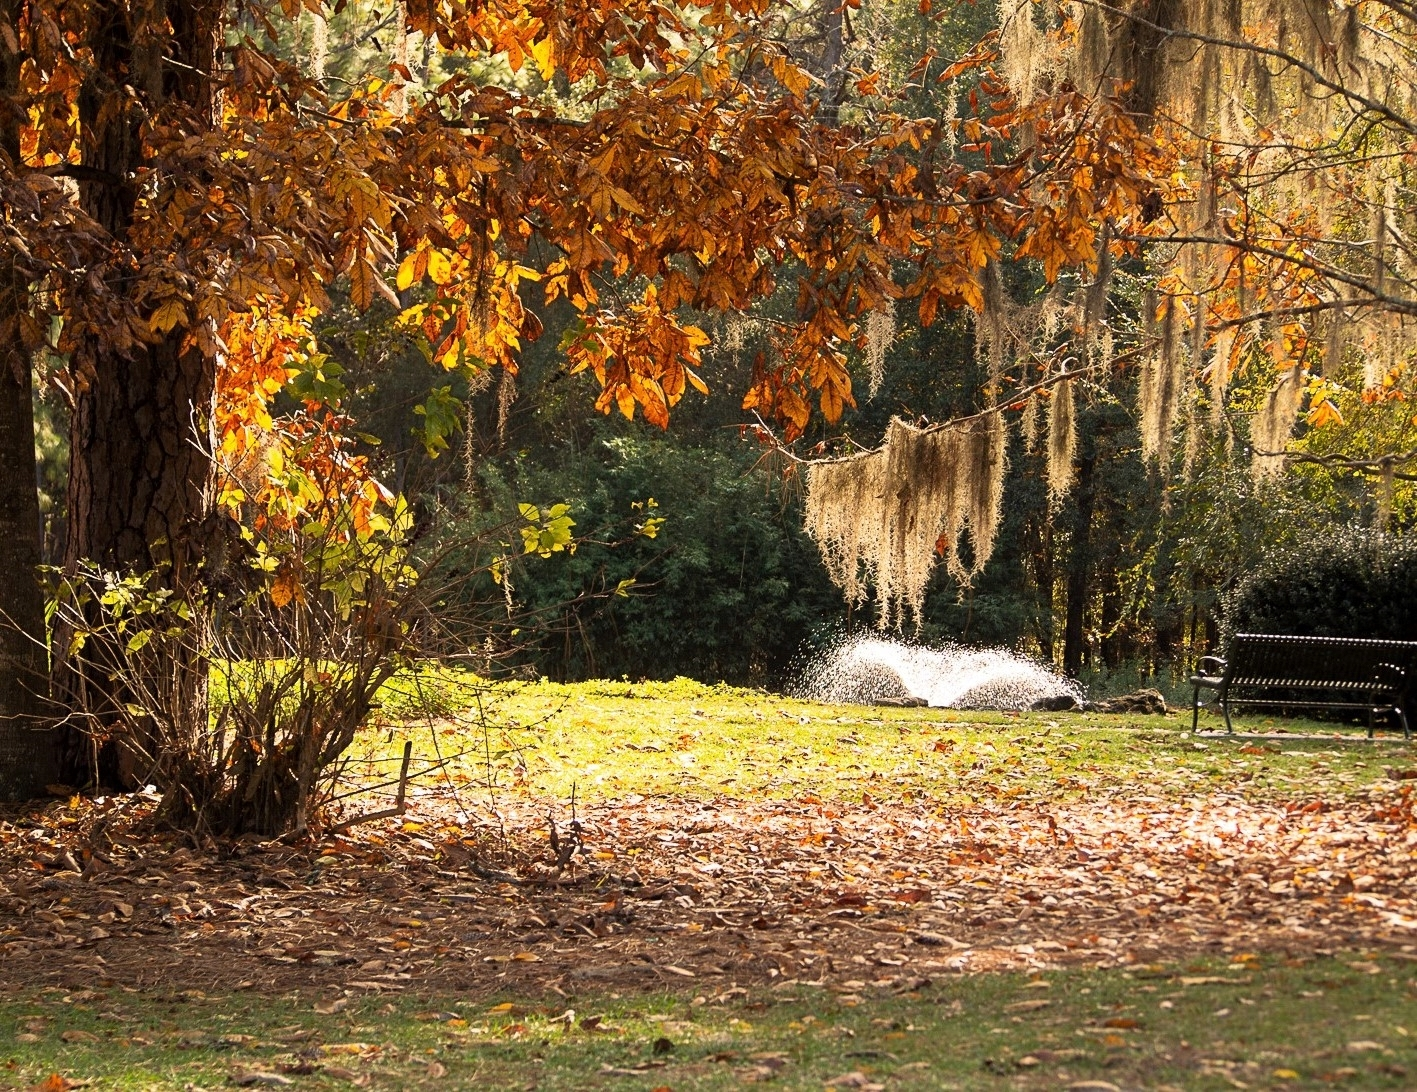 Last week of fall in Ocala, Florida, a photograph by LensMomentsNS - nichole spates (c) 2019